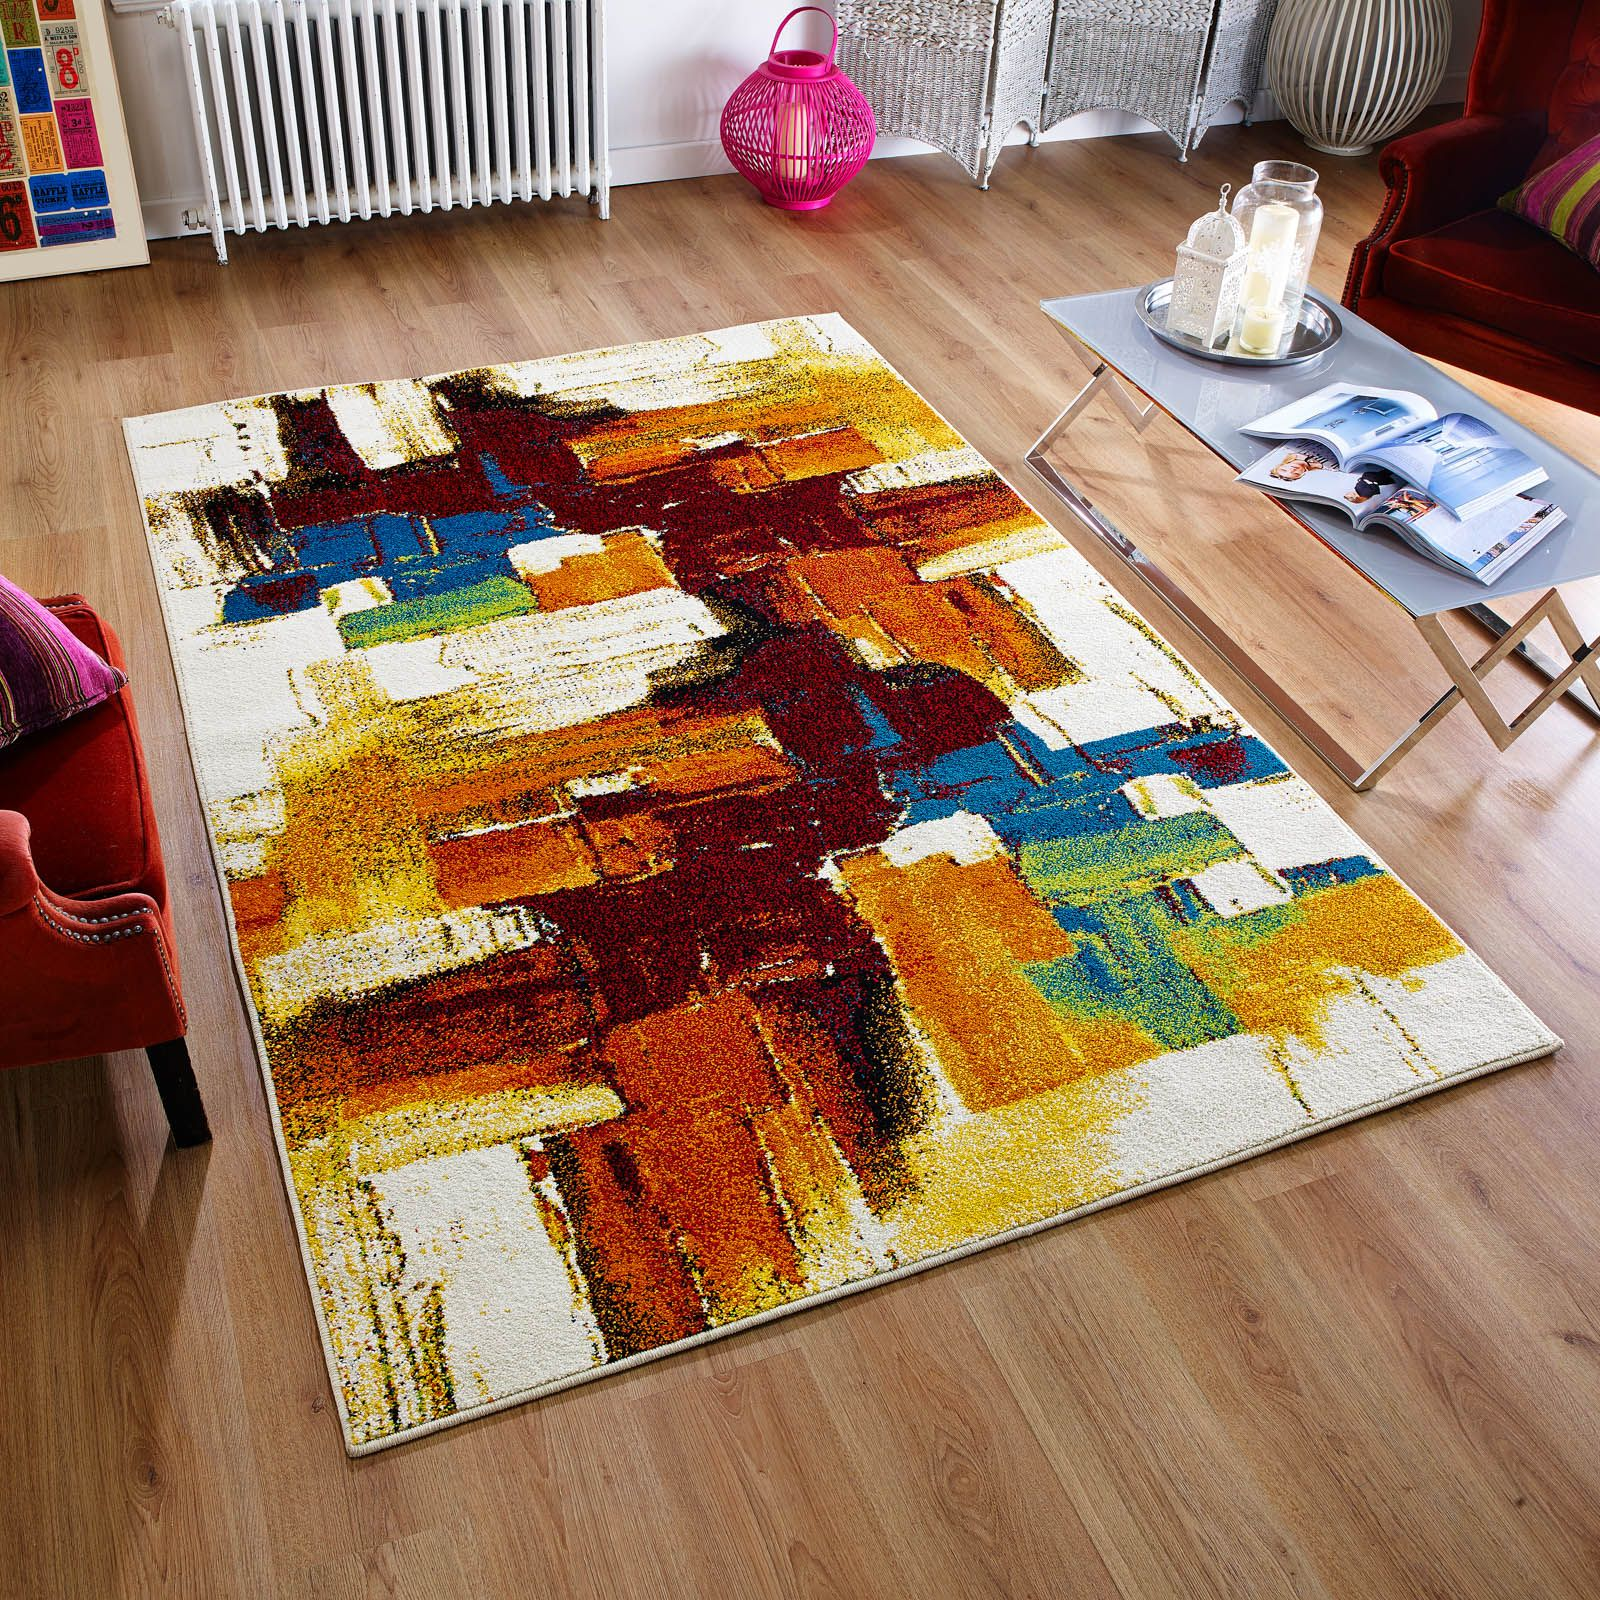 cuba rugs 8022-e feature an abstract design with vibrant colour